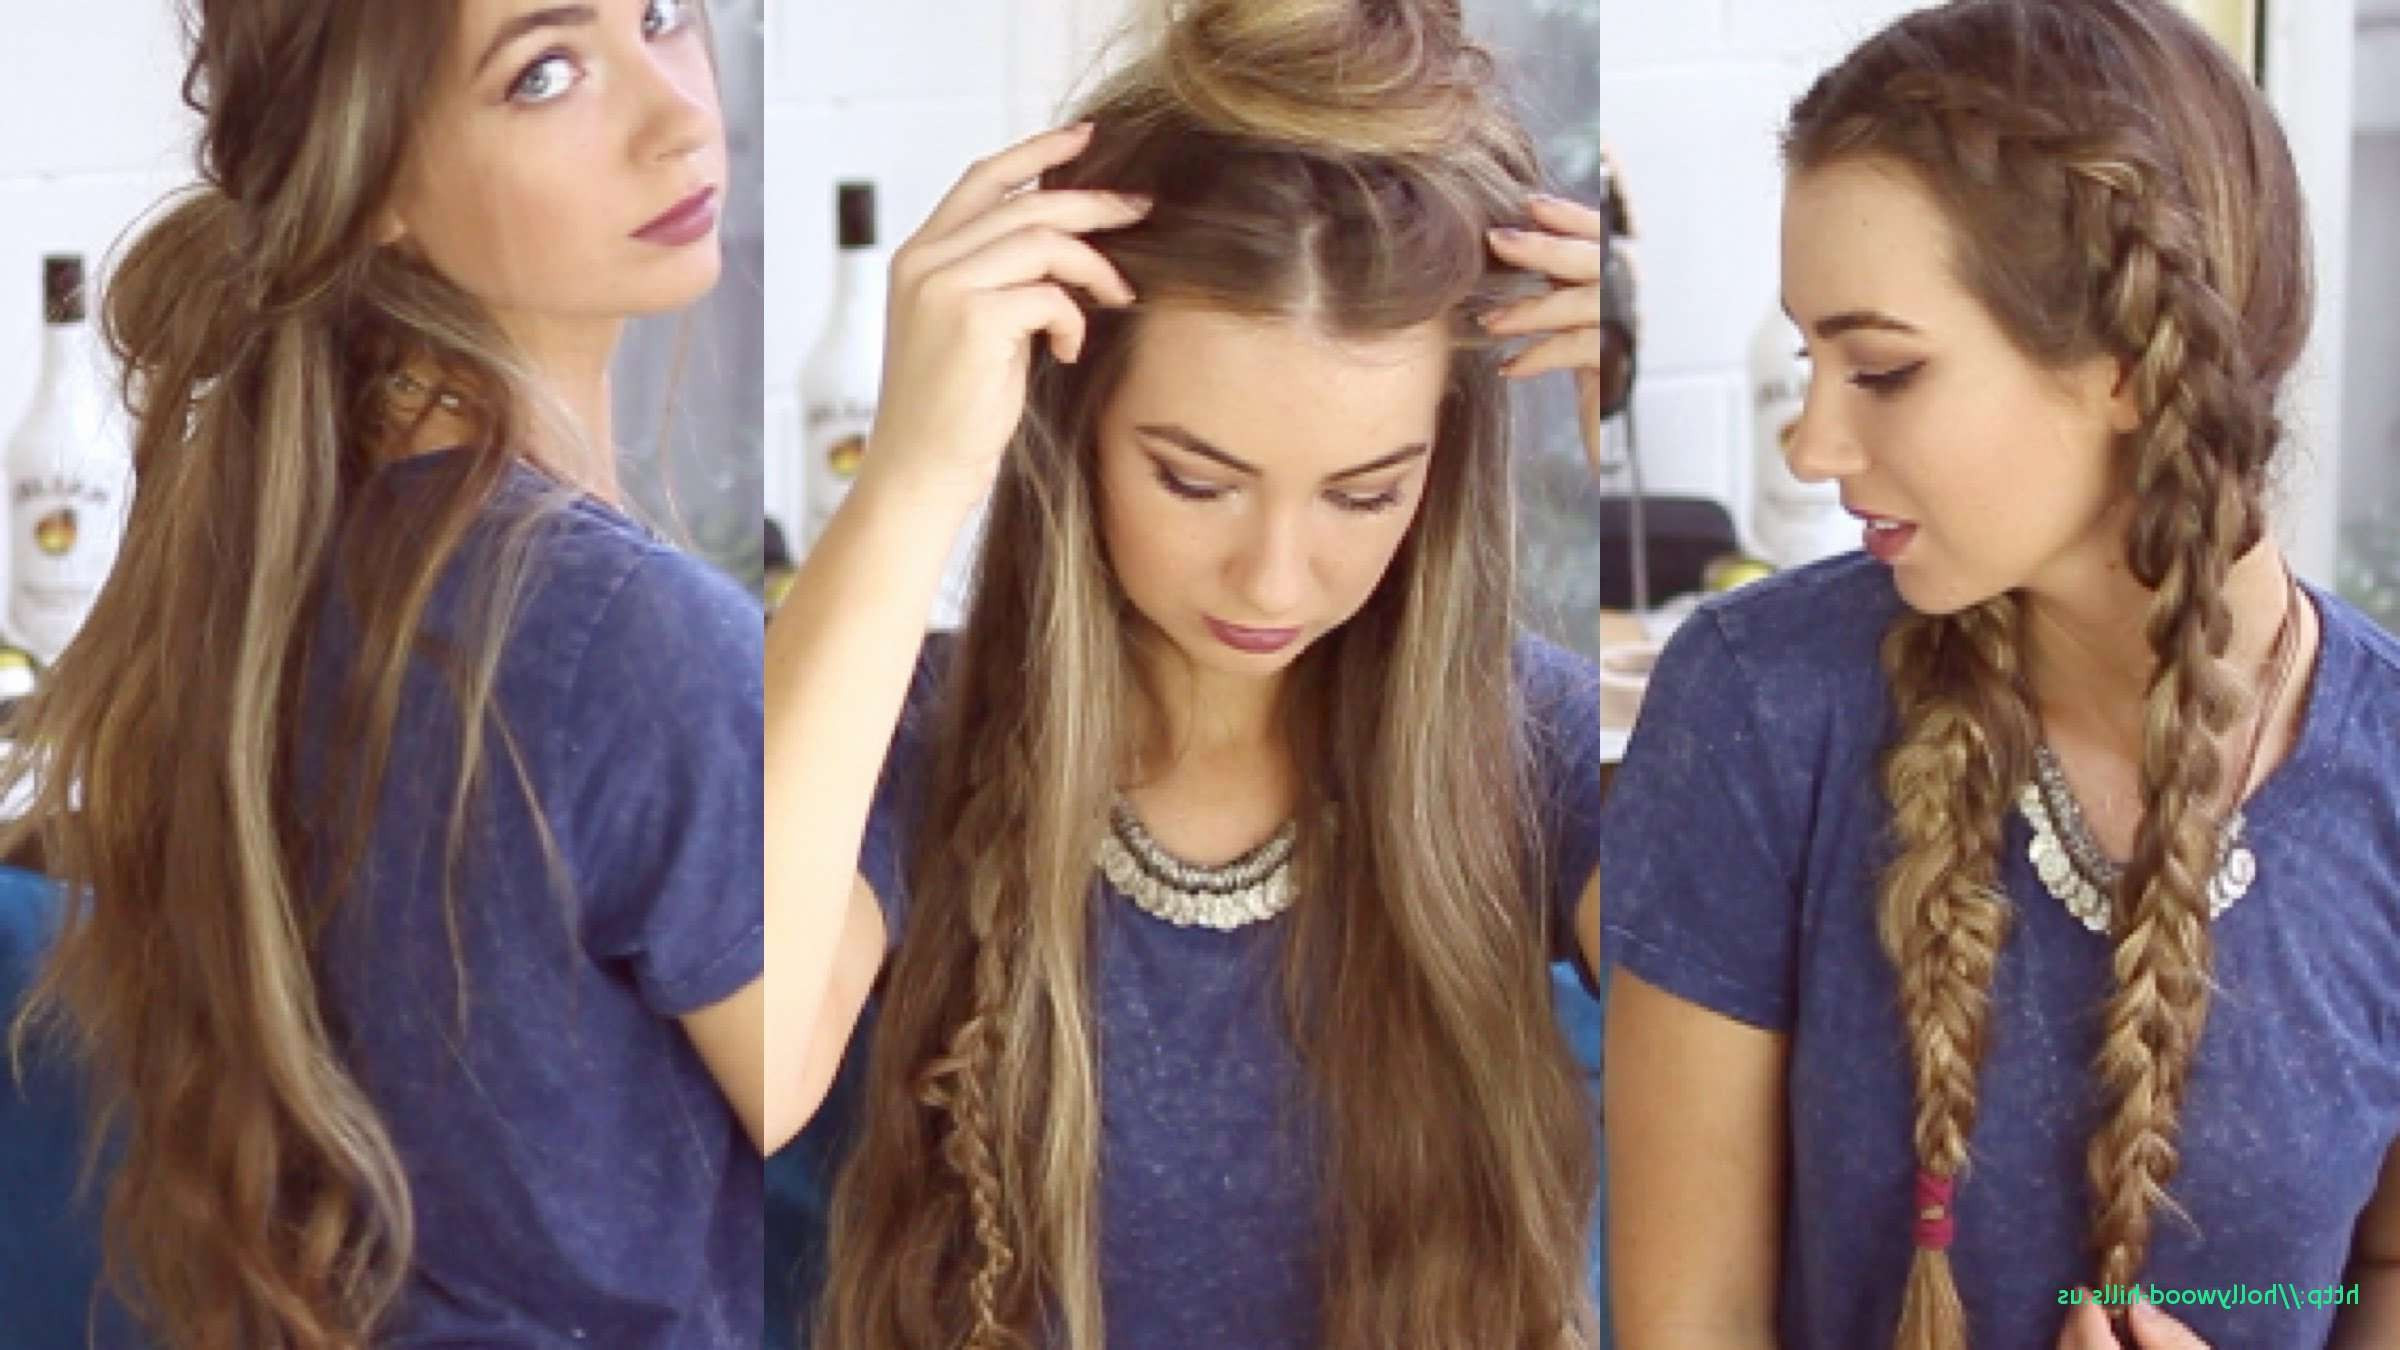 Fresh Low Ponytail Hairstyles Short Hair – Uternity Inside Graduation Cap Hairstyles For Short Hair (View 22 of 25)